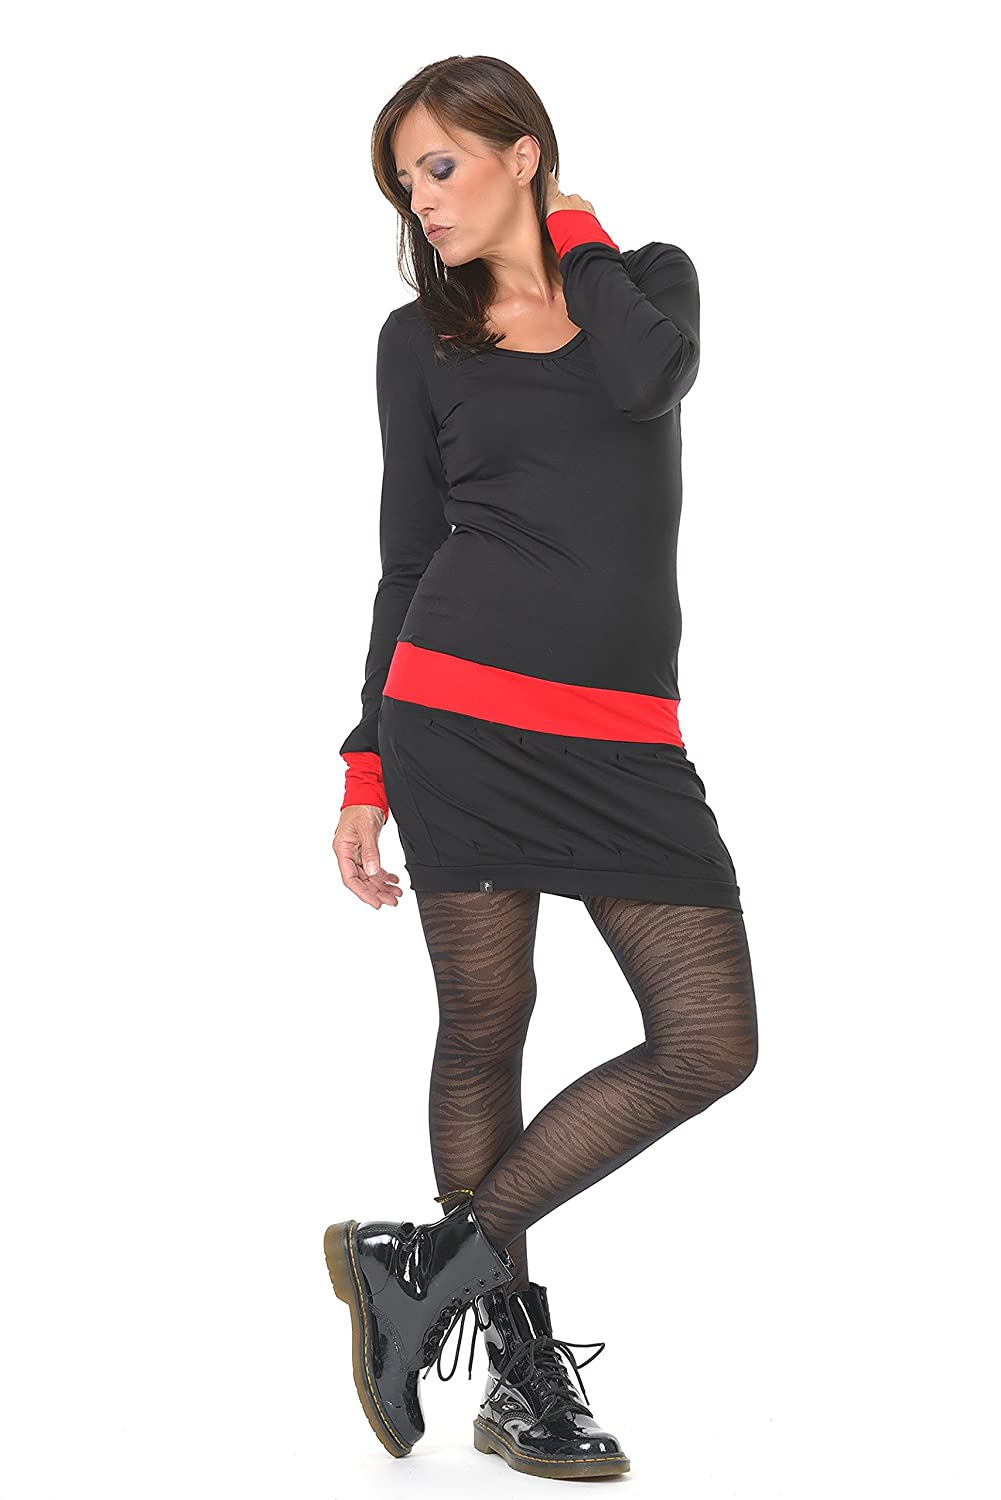 Long Sleeve Woman Dress / Mini Dresses designed by 3Elfen - Casual Bodycon Summer Outfit in Plus Size Fashion Girls / black red XS